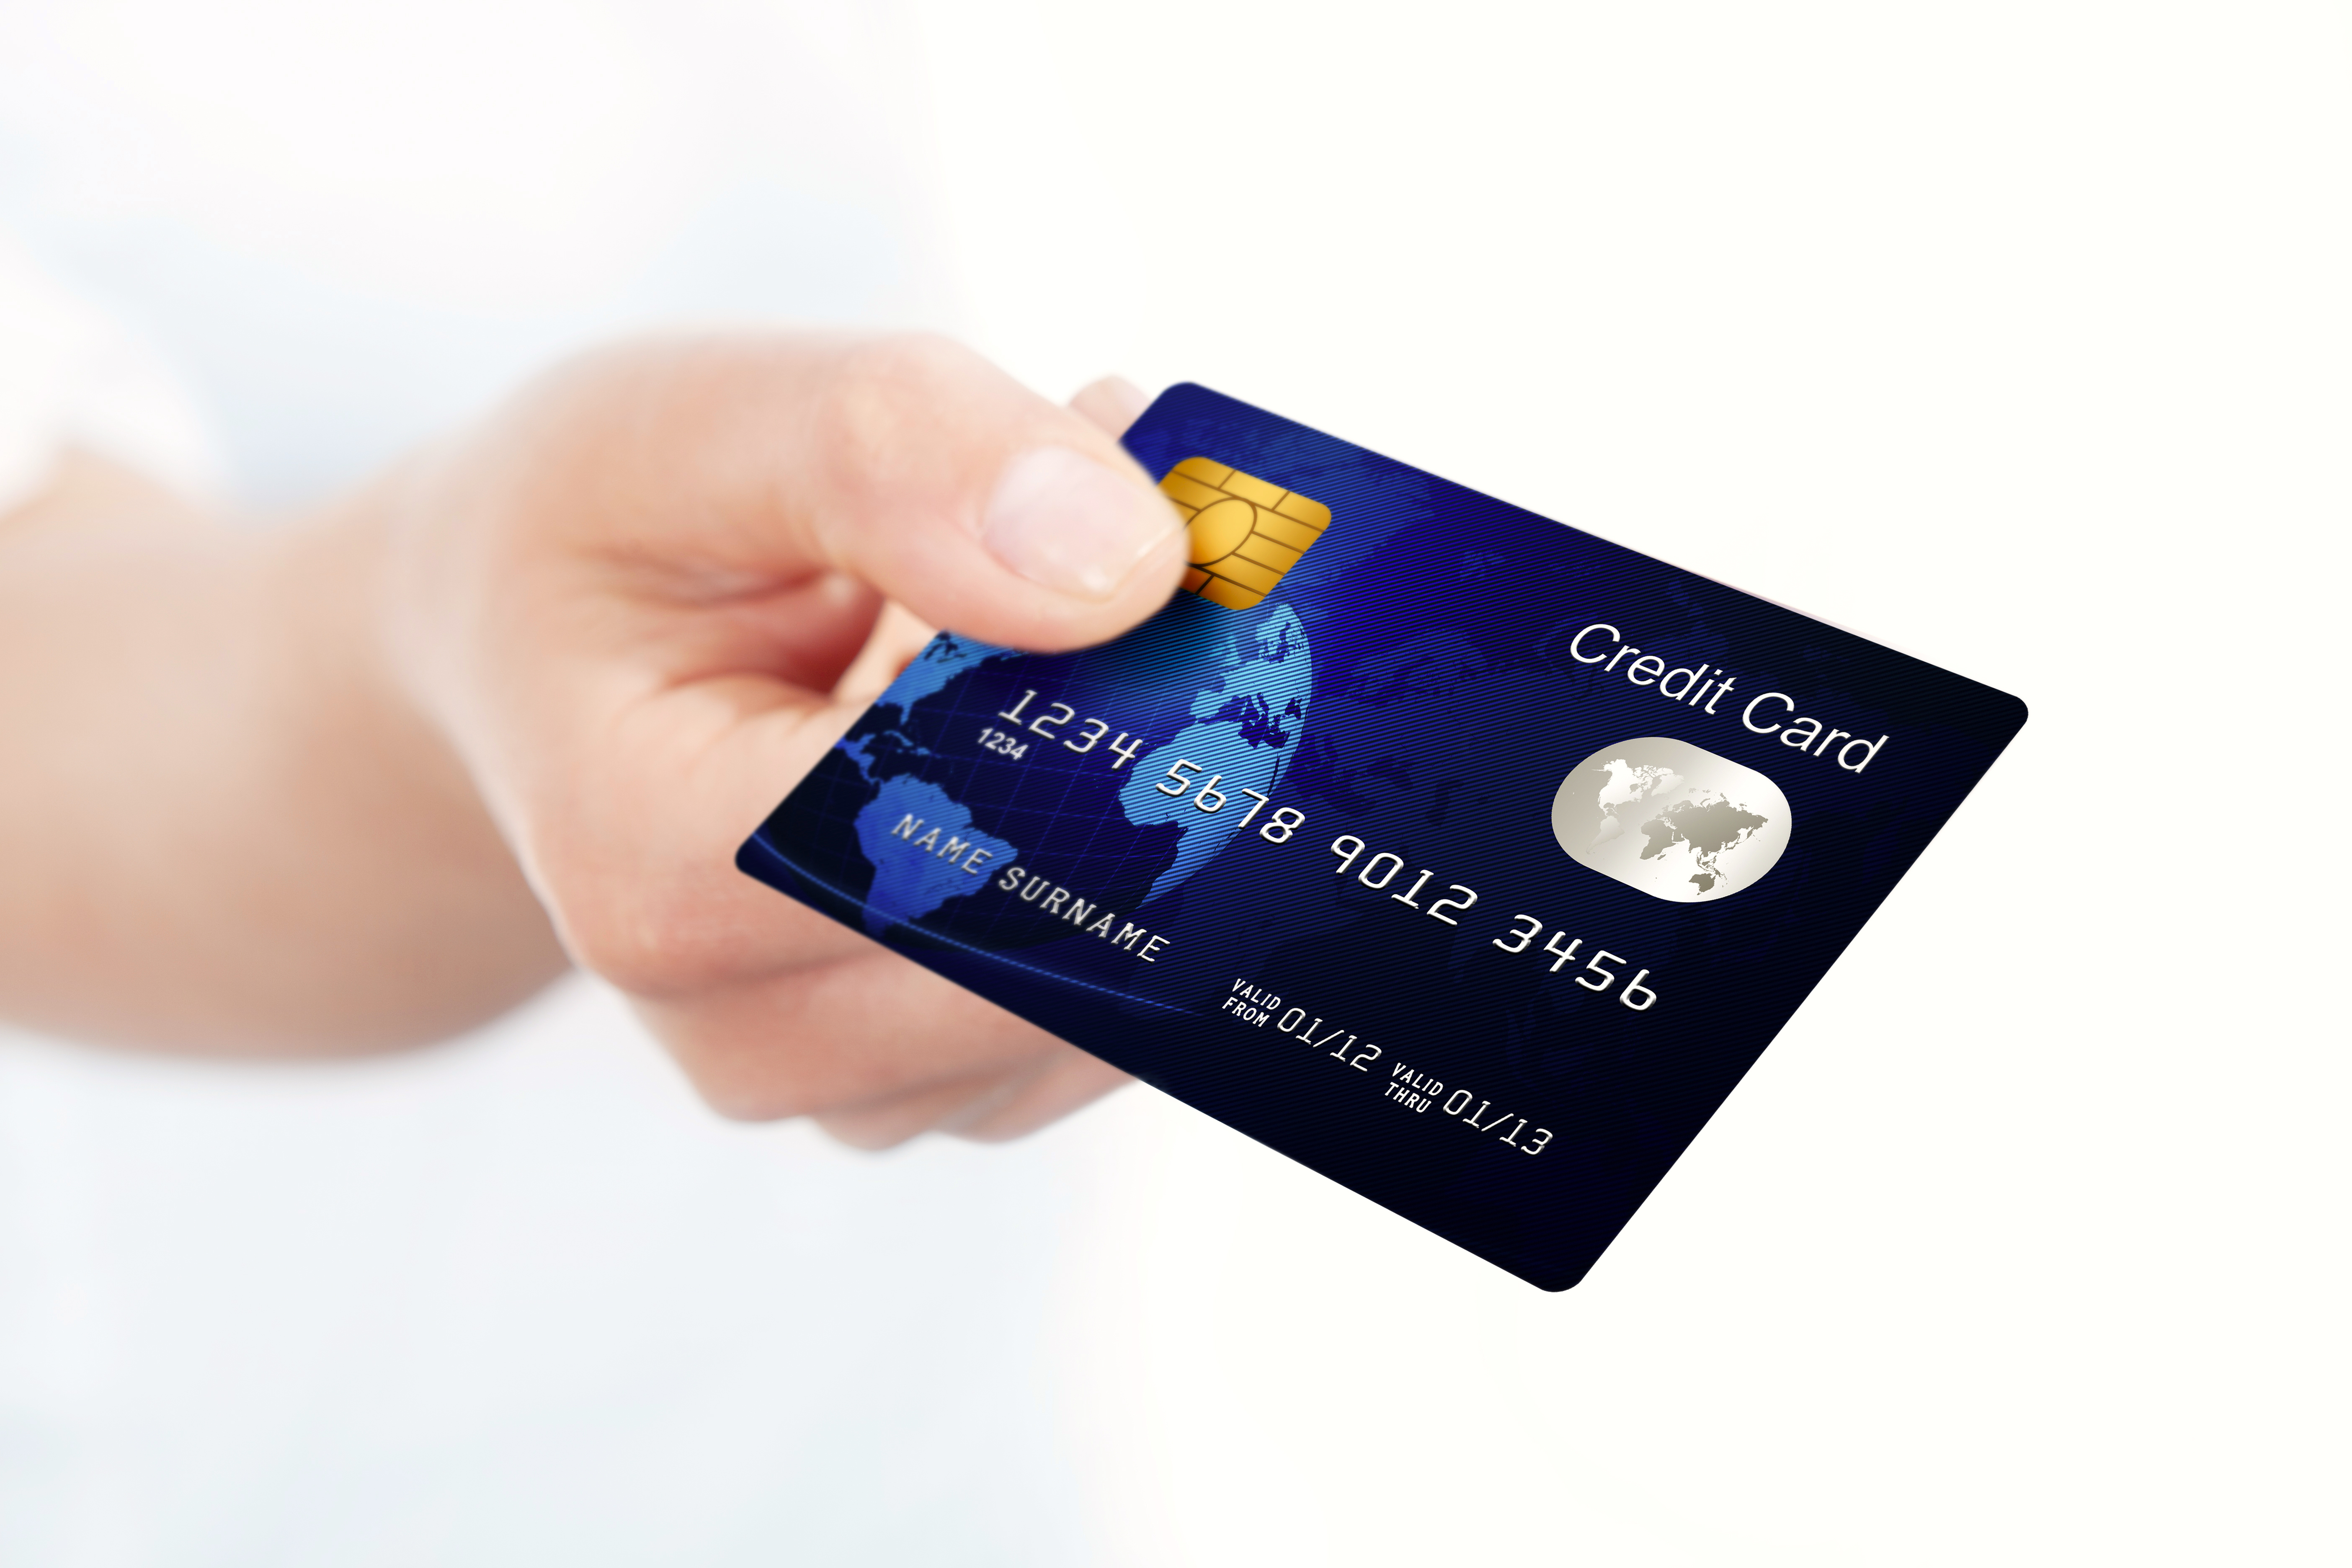 Free stock photo of atm ATM Card card